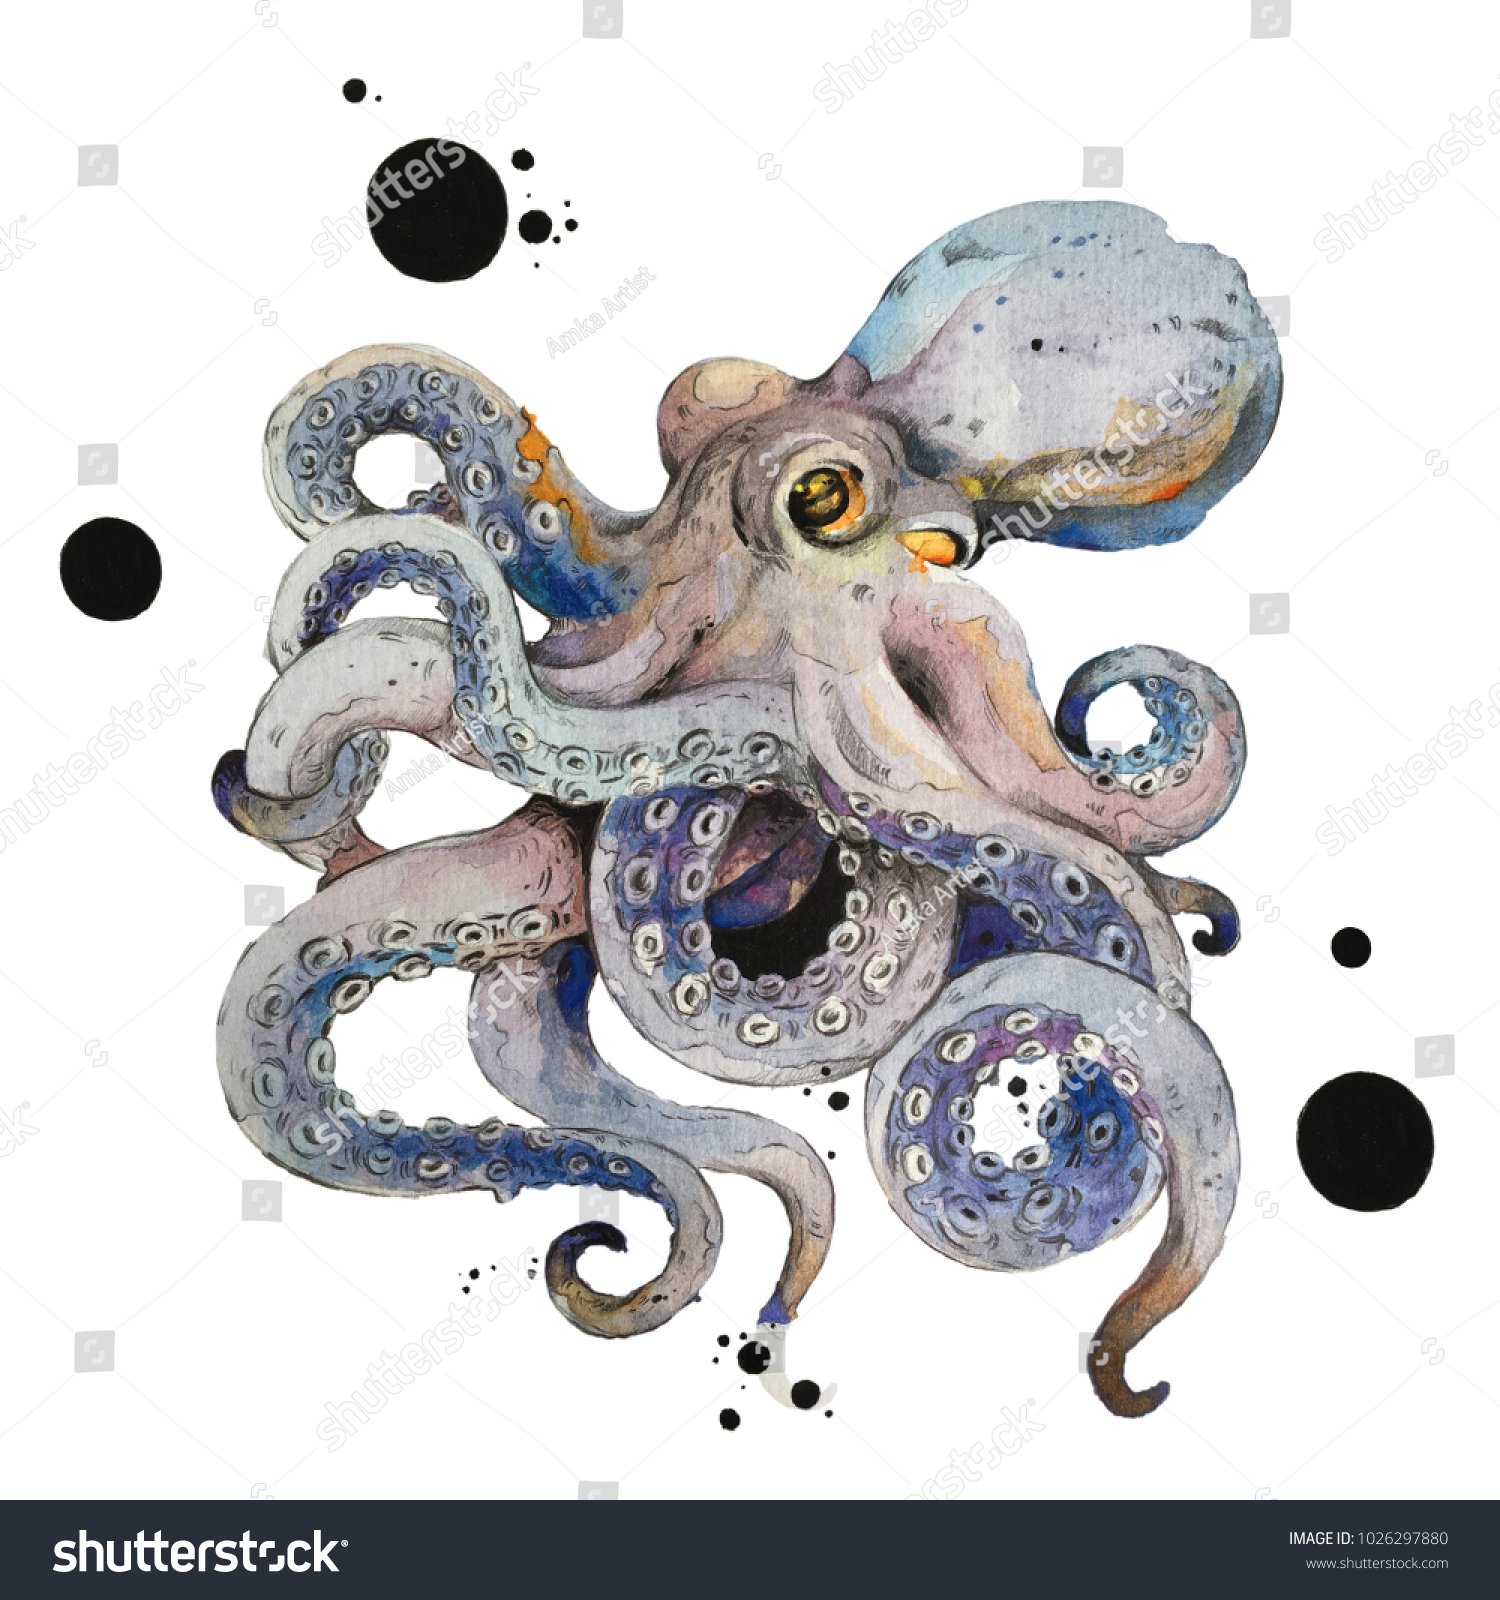 Isolated Octopus Watercolour Painting On White Stockillustration ...